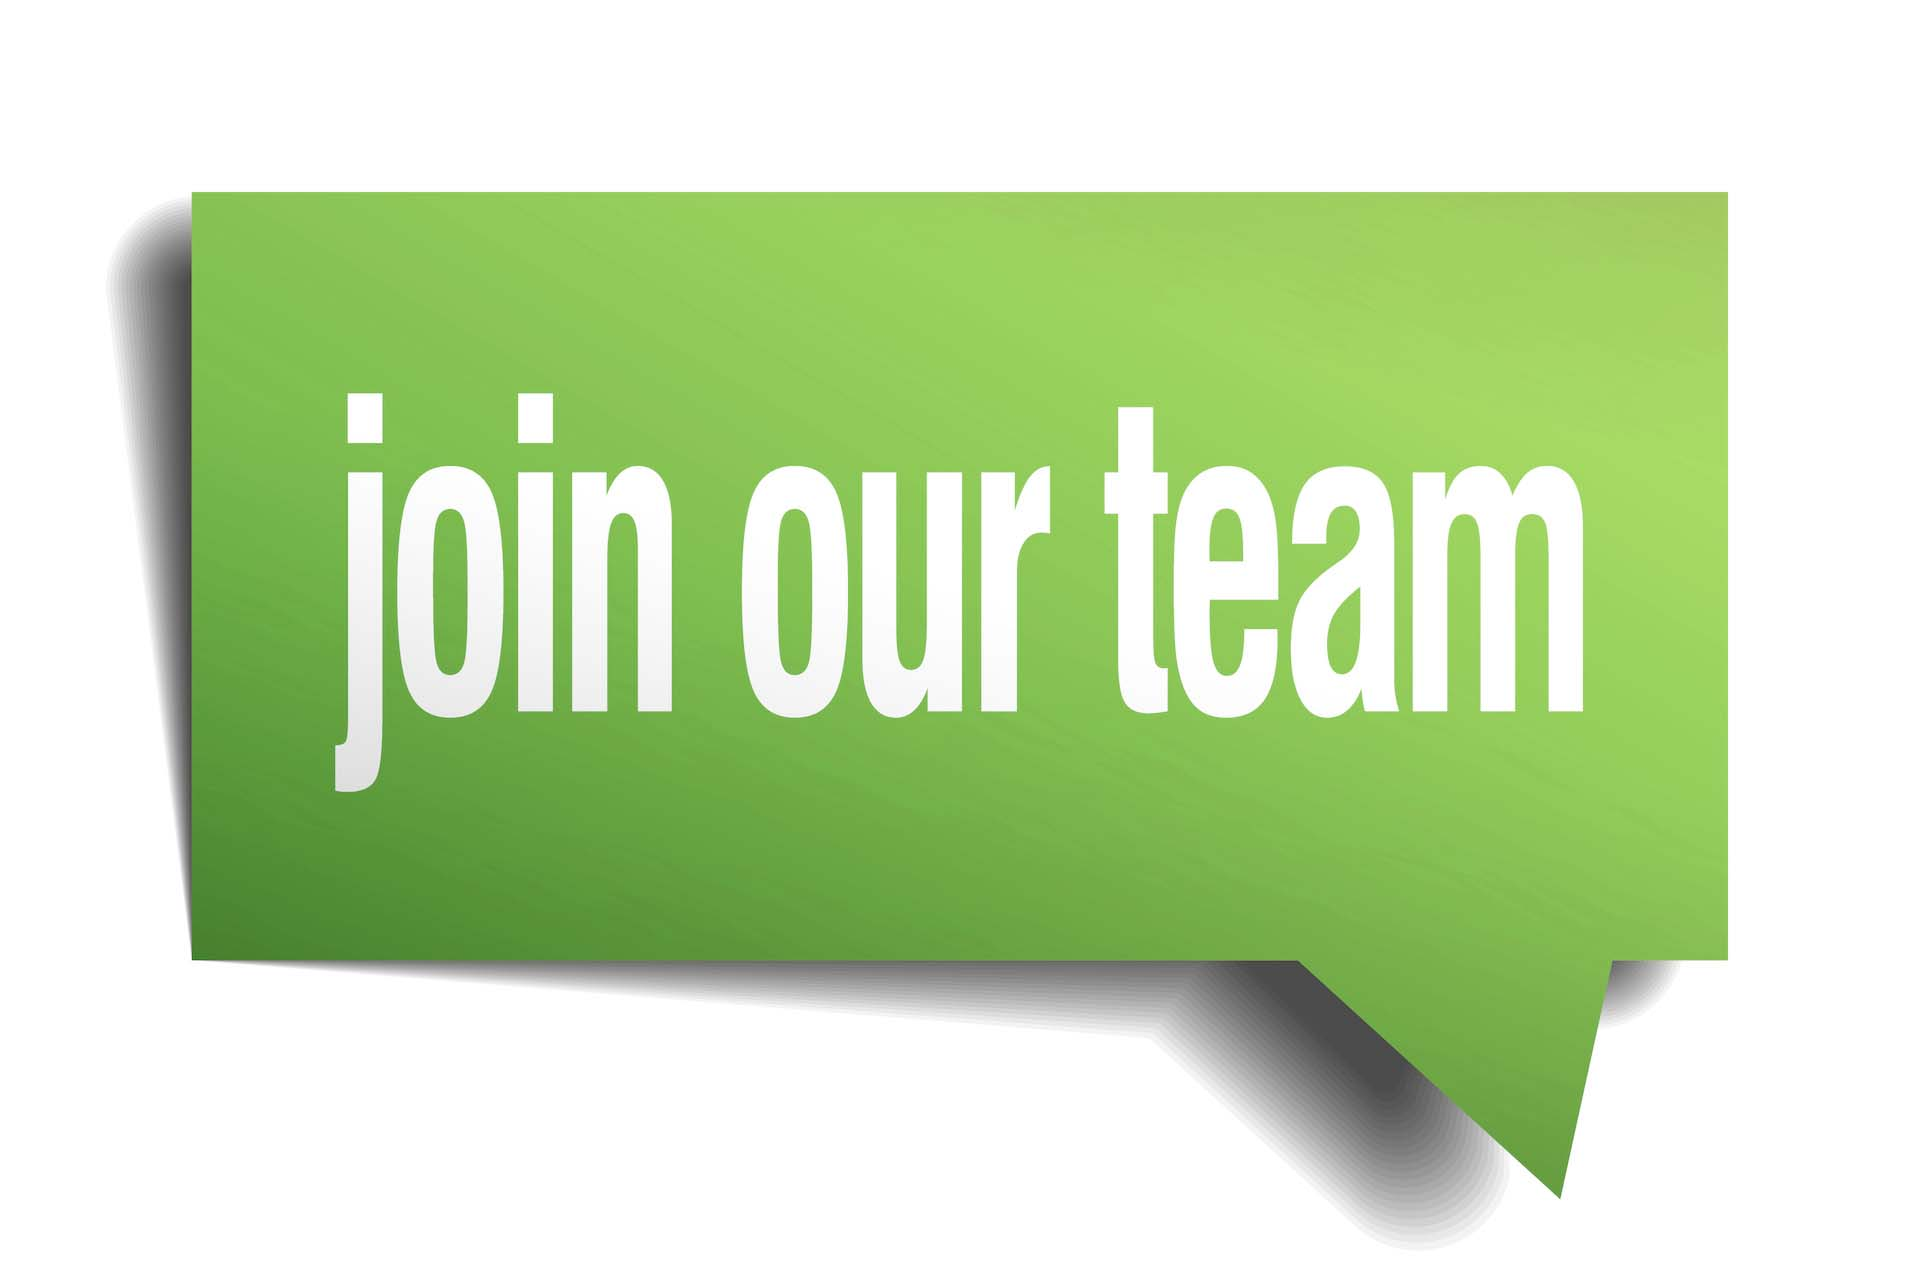 join-team-green